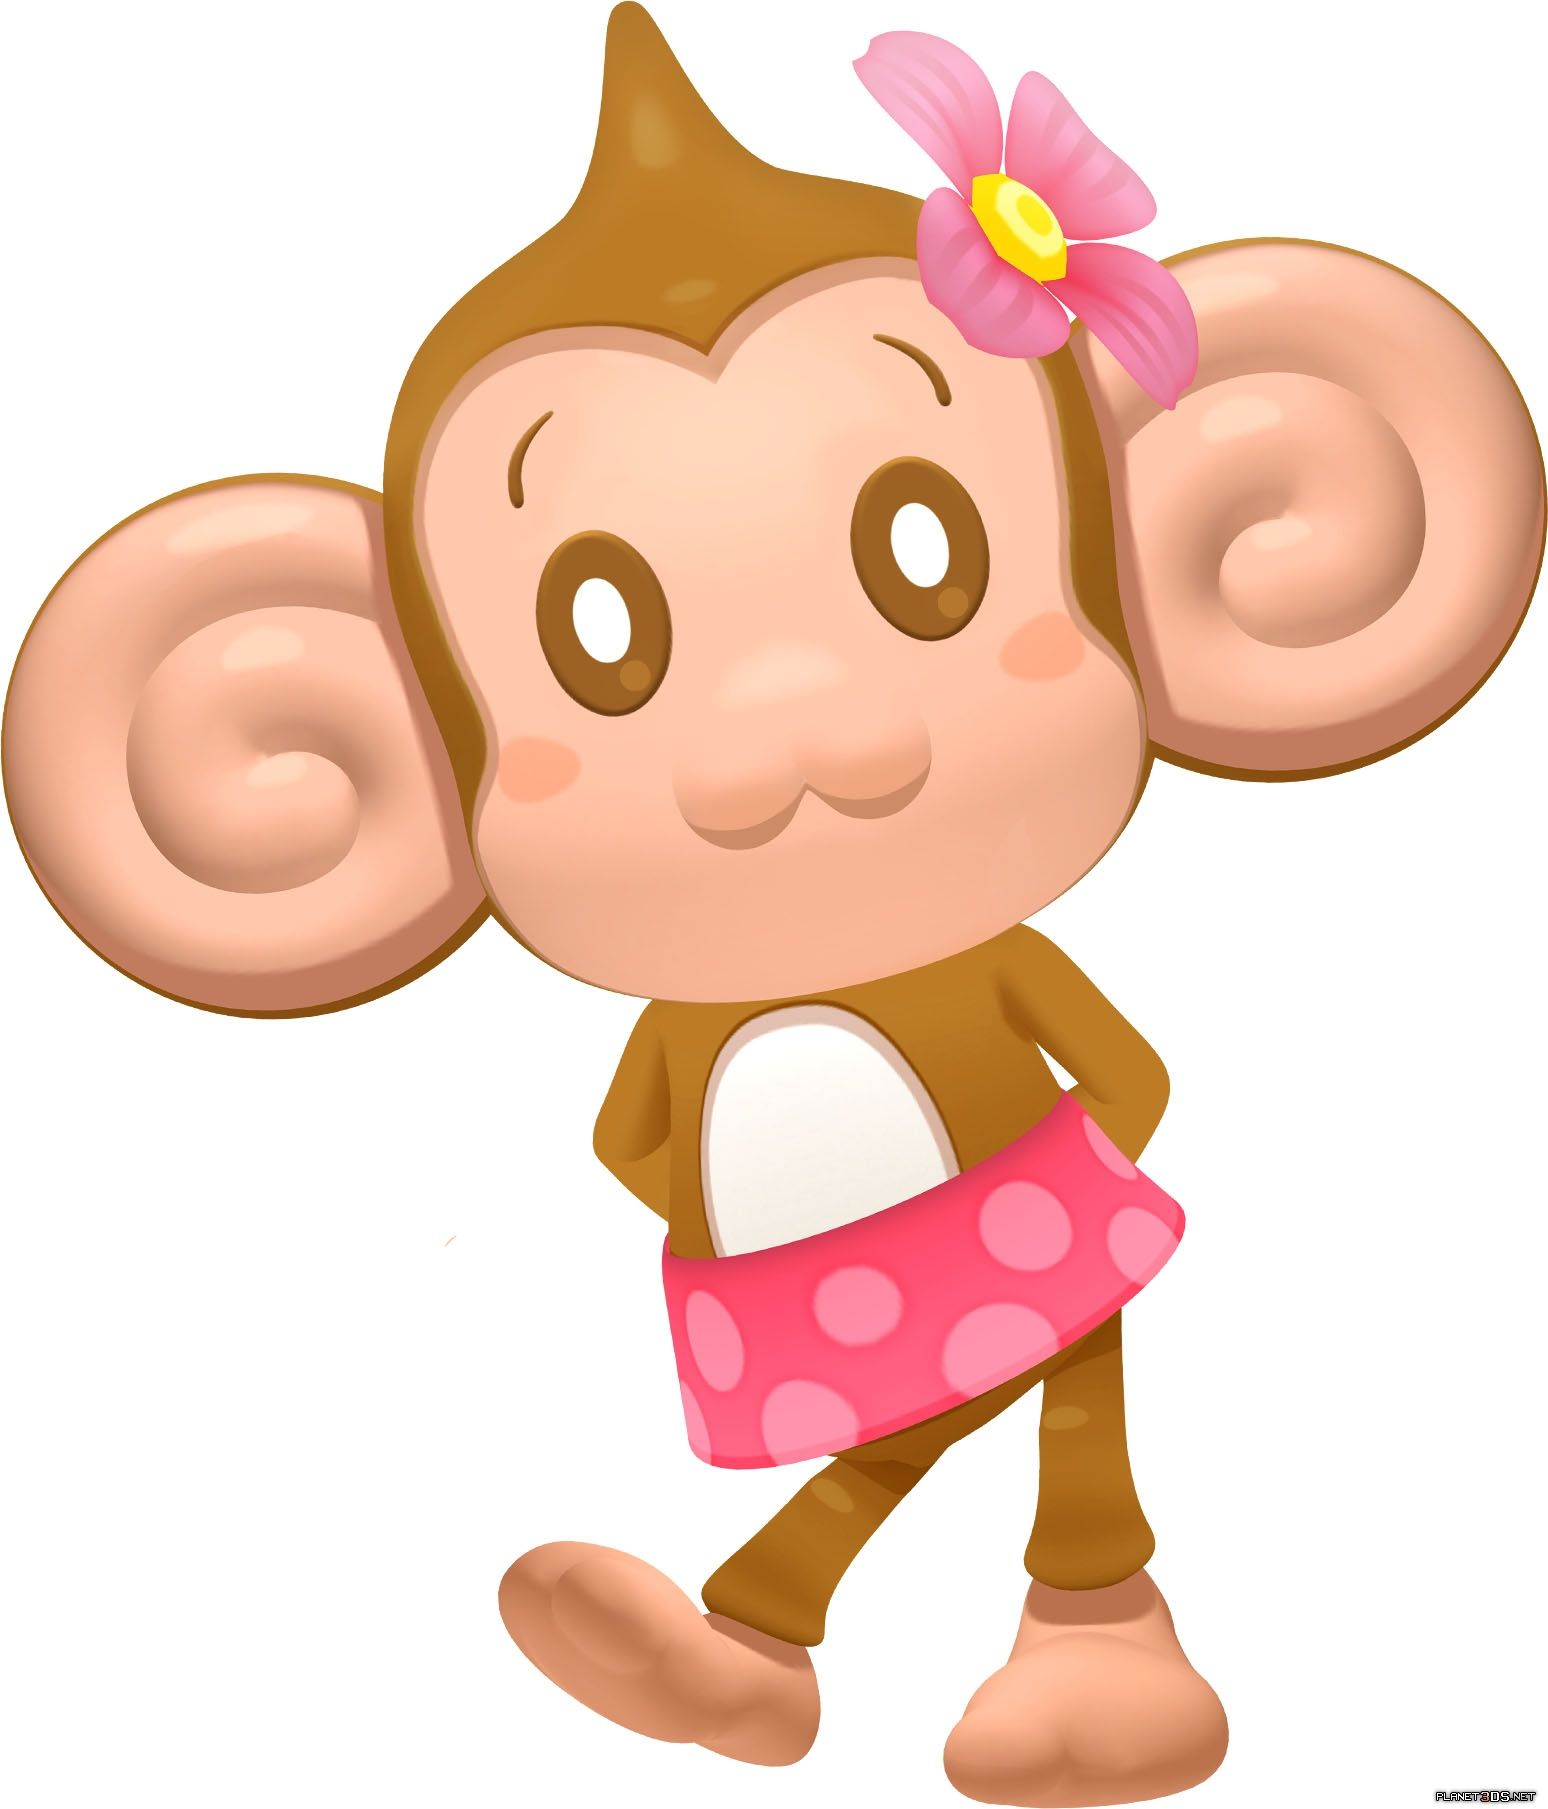 Meemee my favorite chara from Super Monkey Ball ~ ^ ww